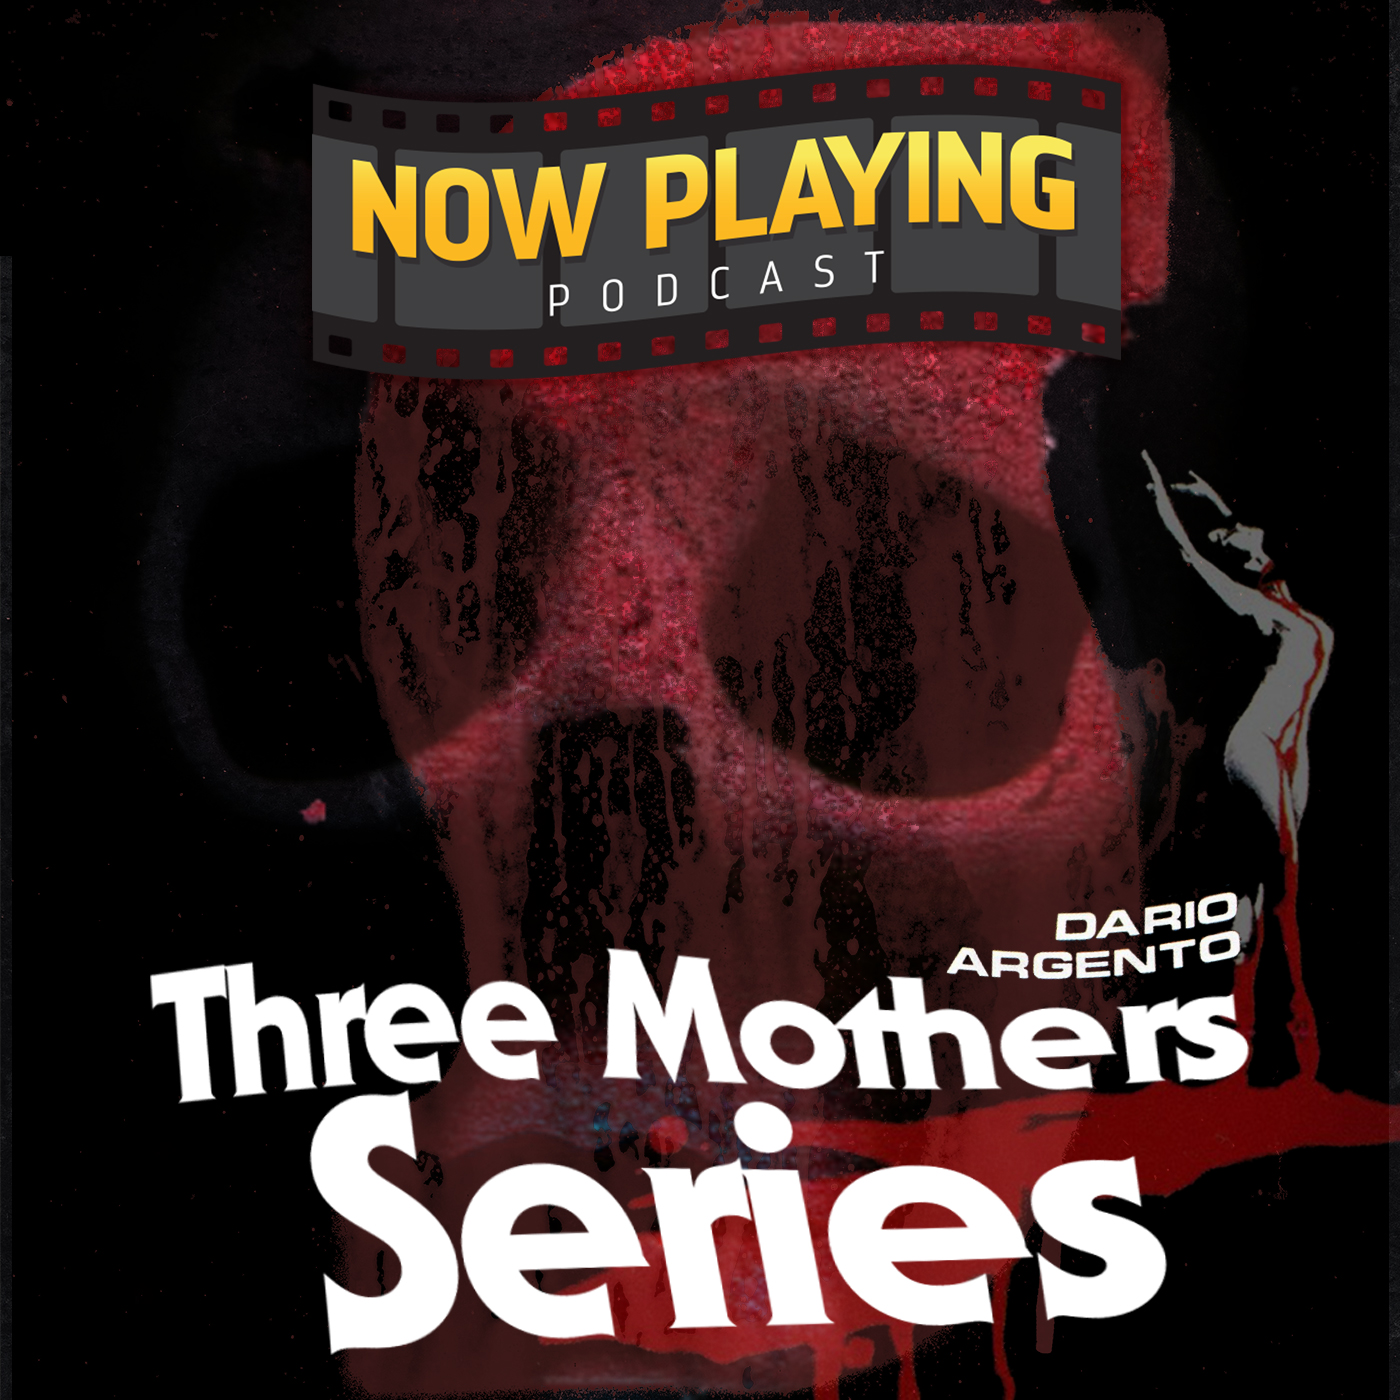 Three Mothers Series